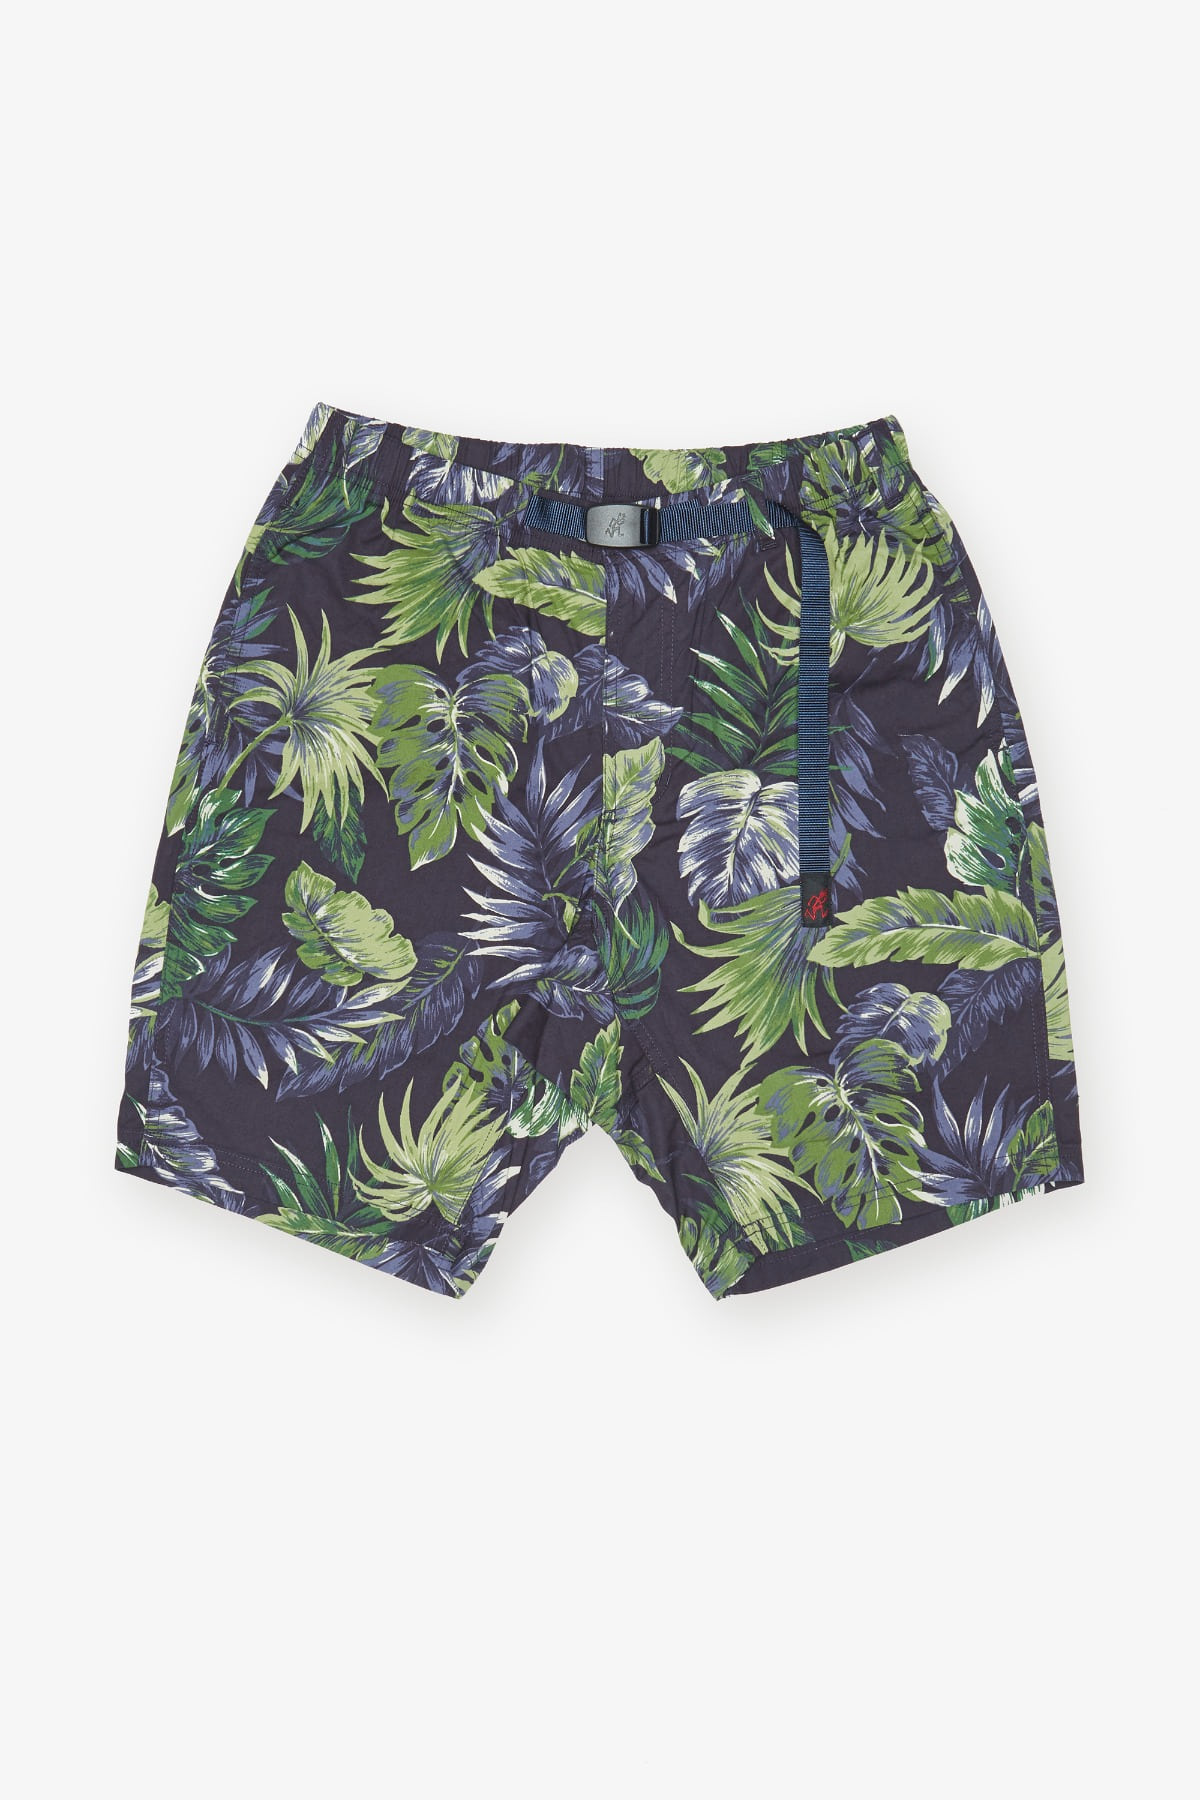 WEATHER NN-SHORTS BOTANICAL NAVY